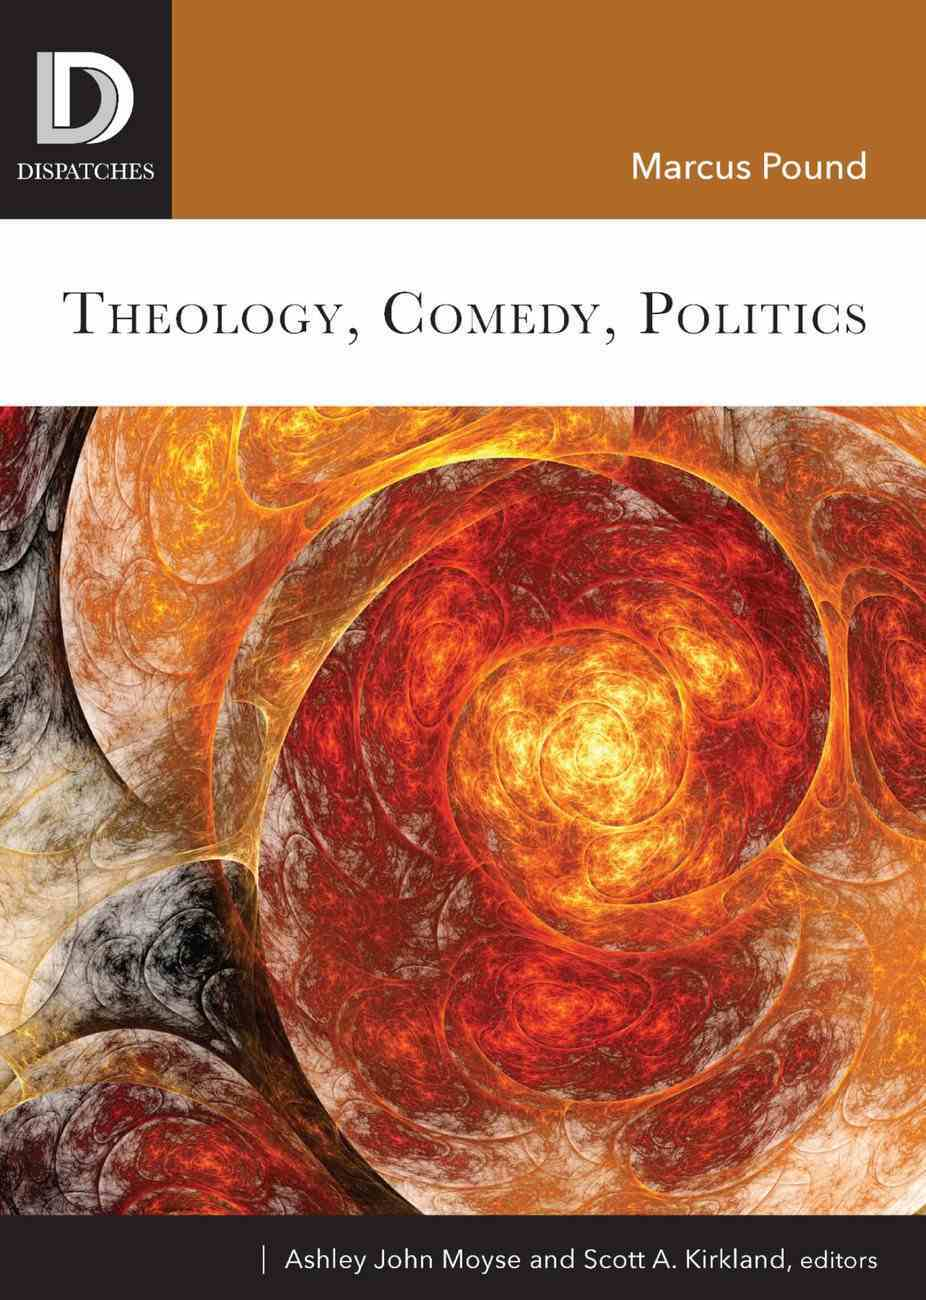 Theology, Comedy, Politics (Dispatches Series) eBook